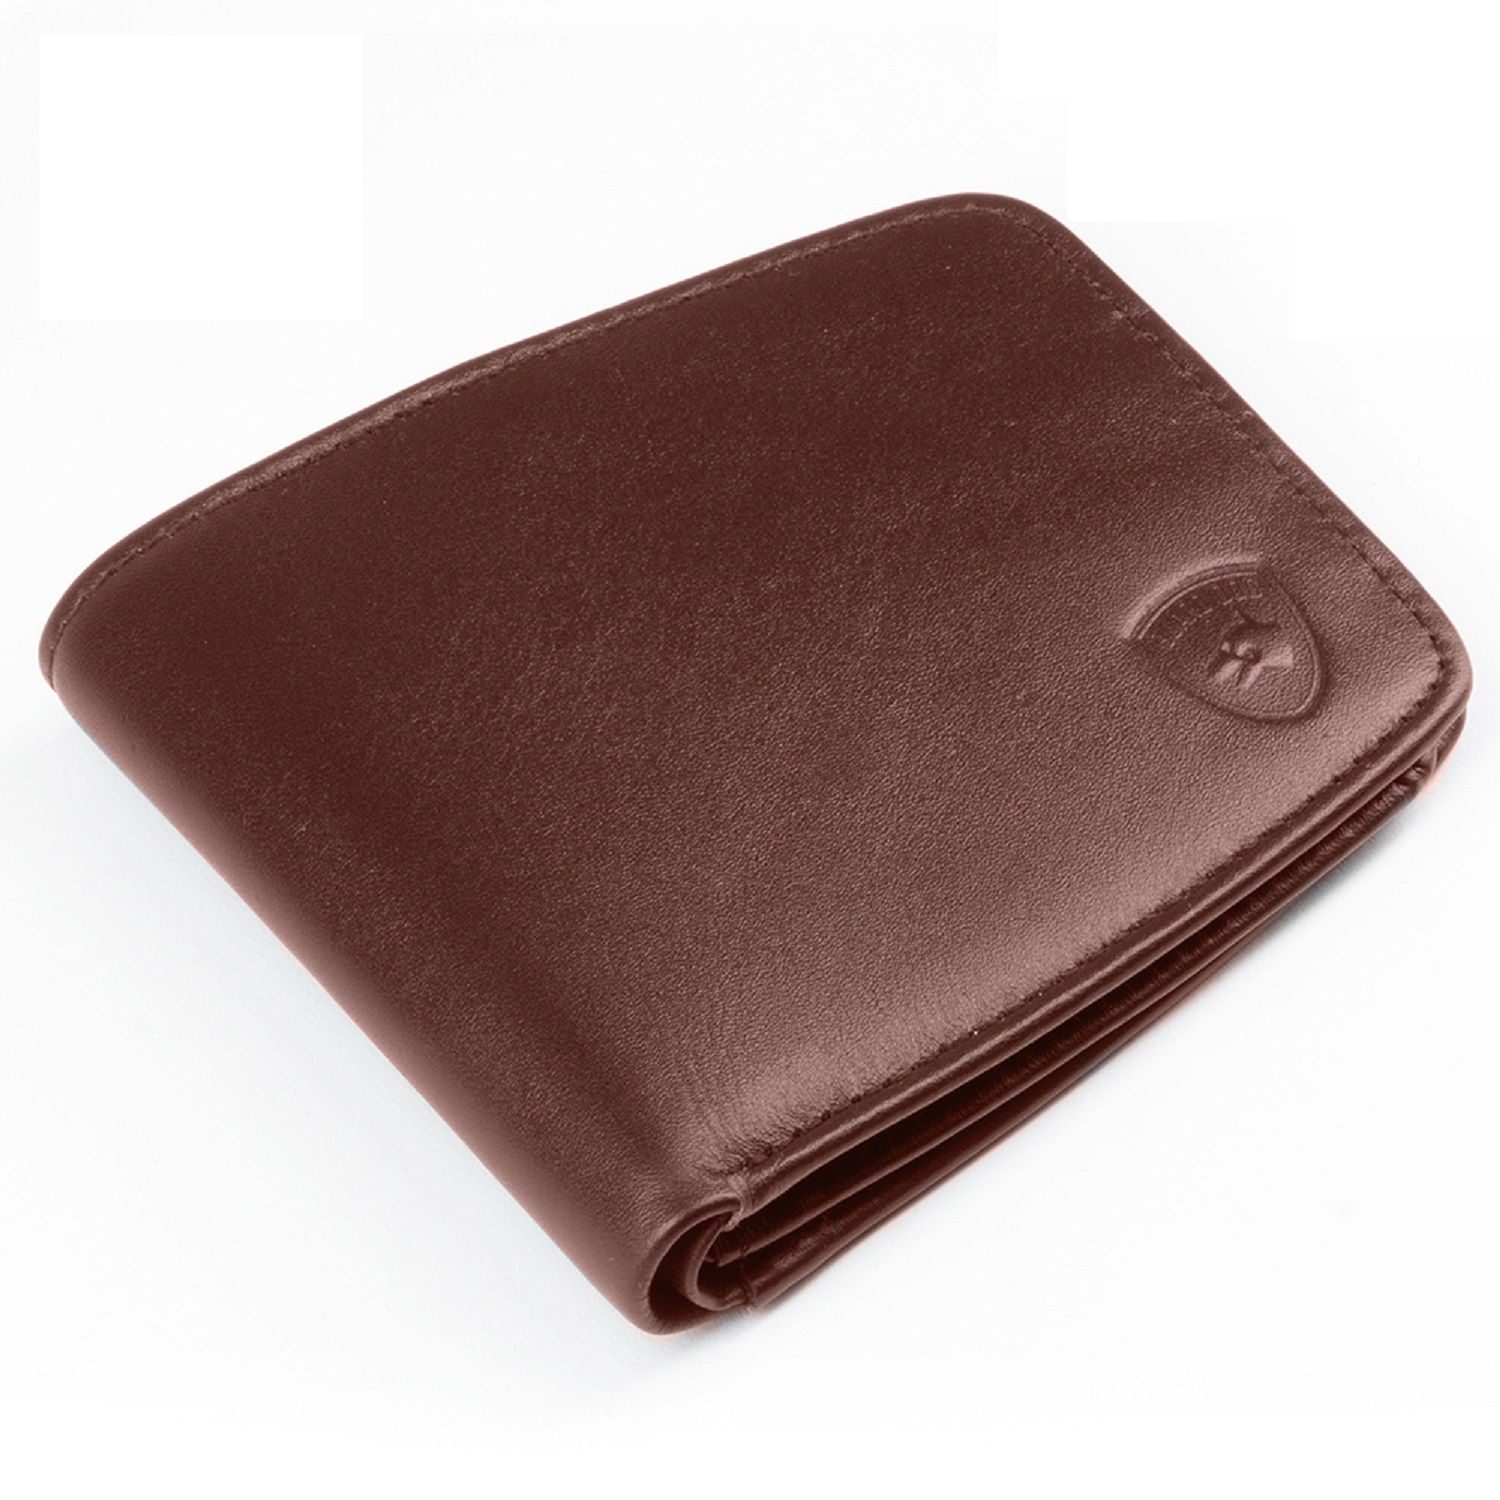 Guard Dog Premium Leather RFID Blocking Ultra Slim Wallet